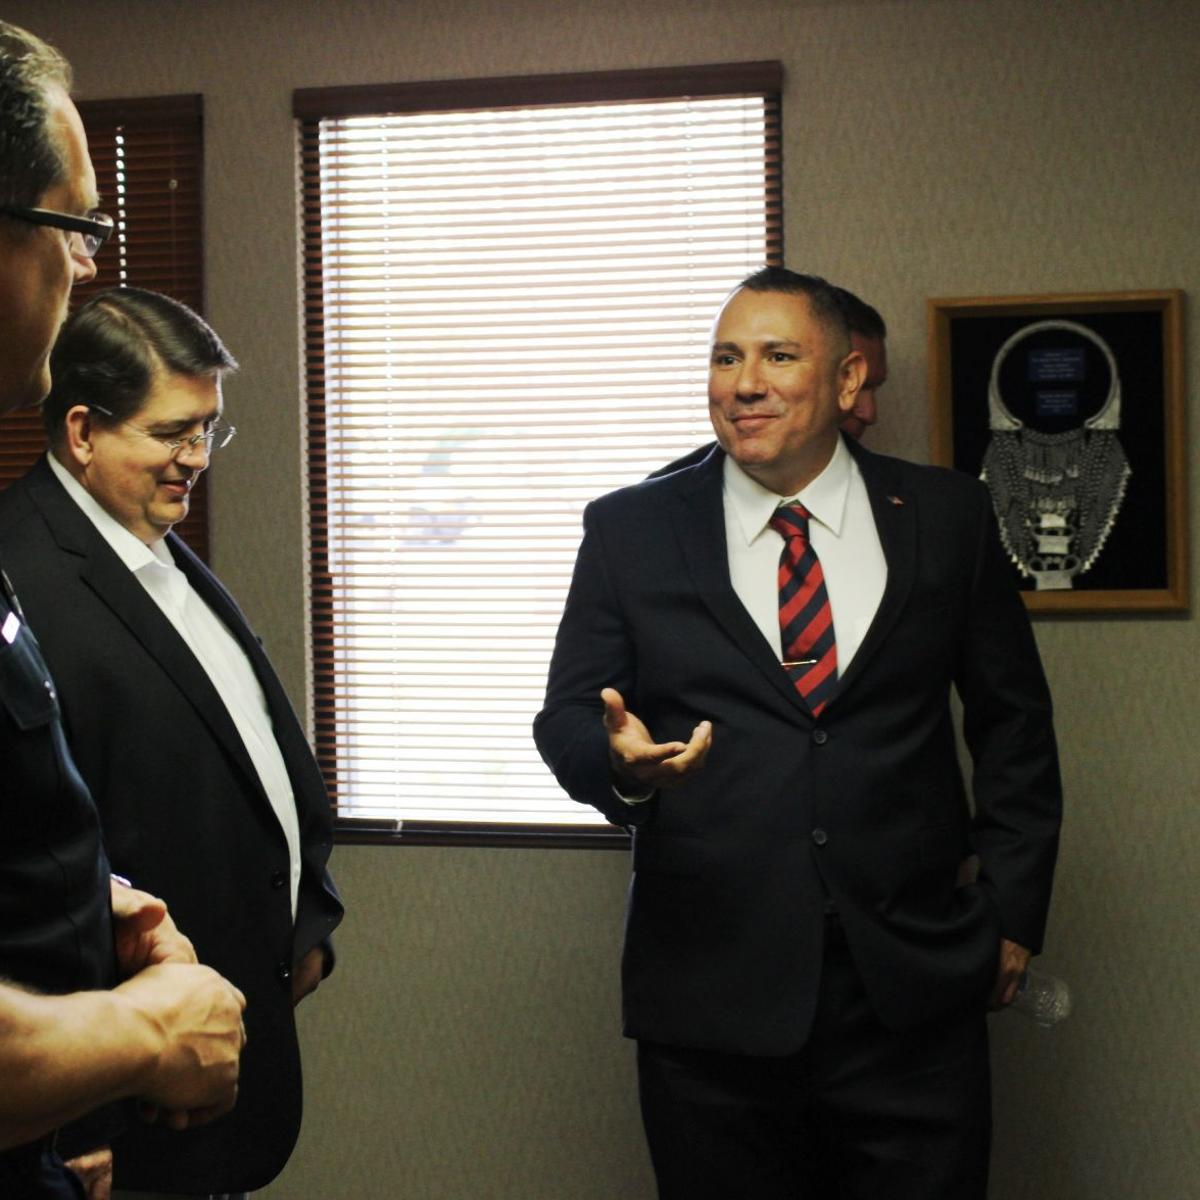 Airman becomes Lompoc mayor for a day | Government and